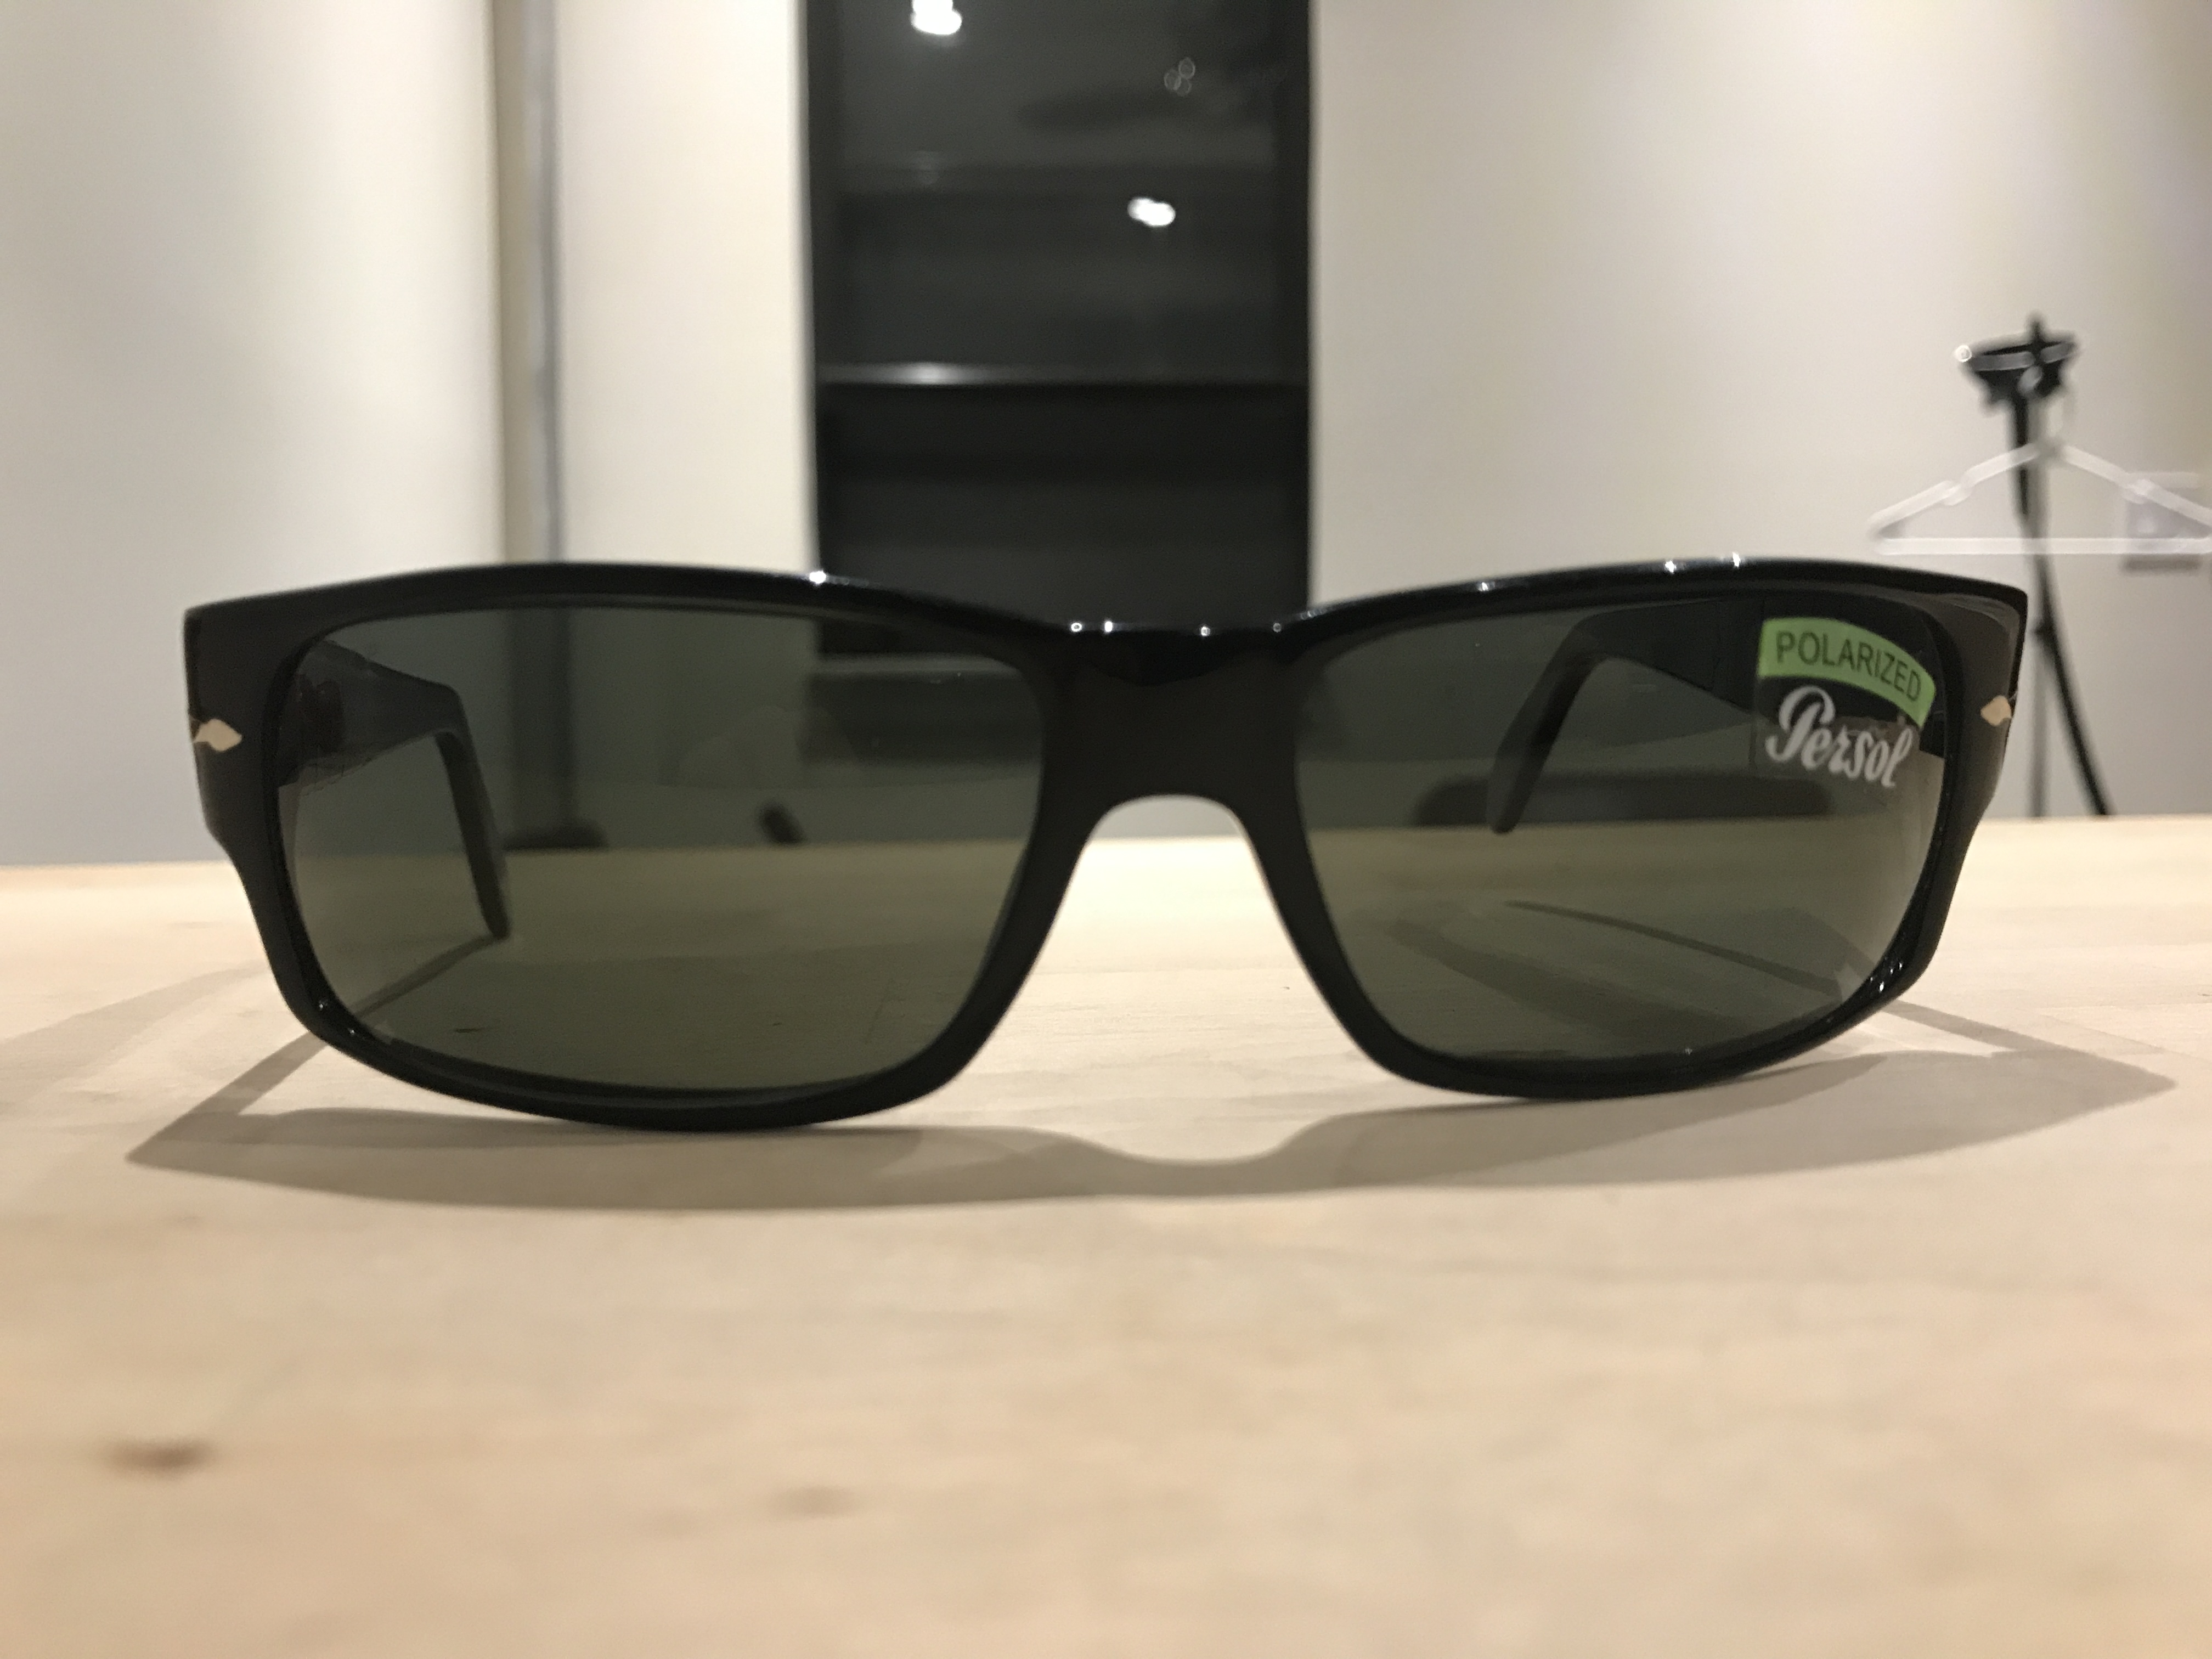 80a8b530af Persol 2720-S Size one size - Glasses for Sale - Grailed